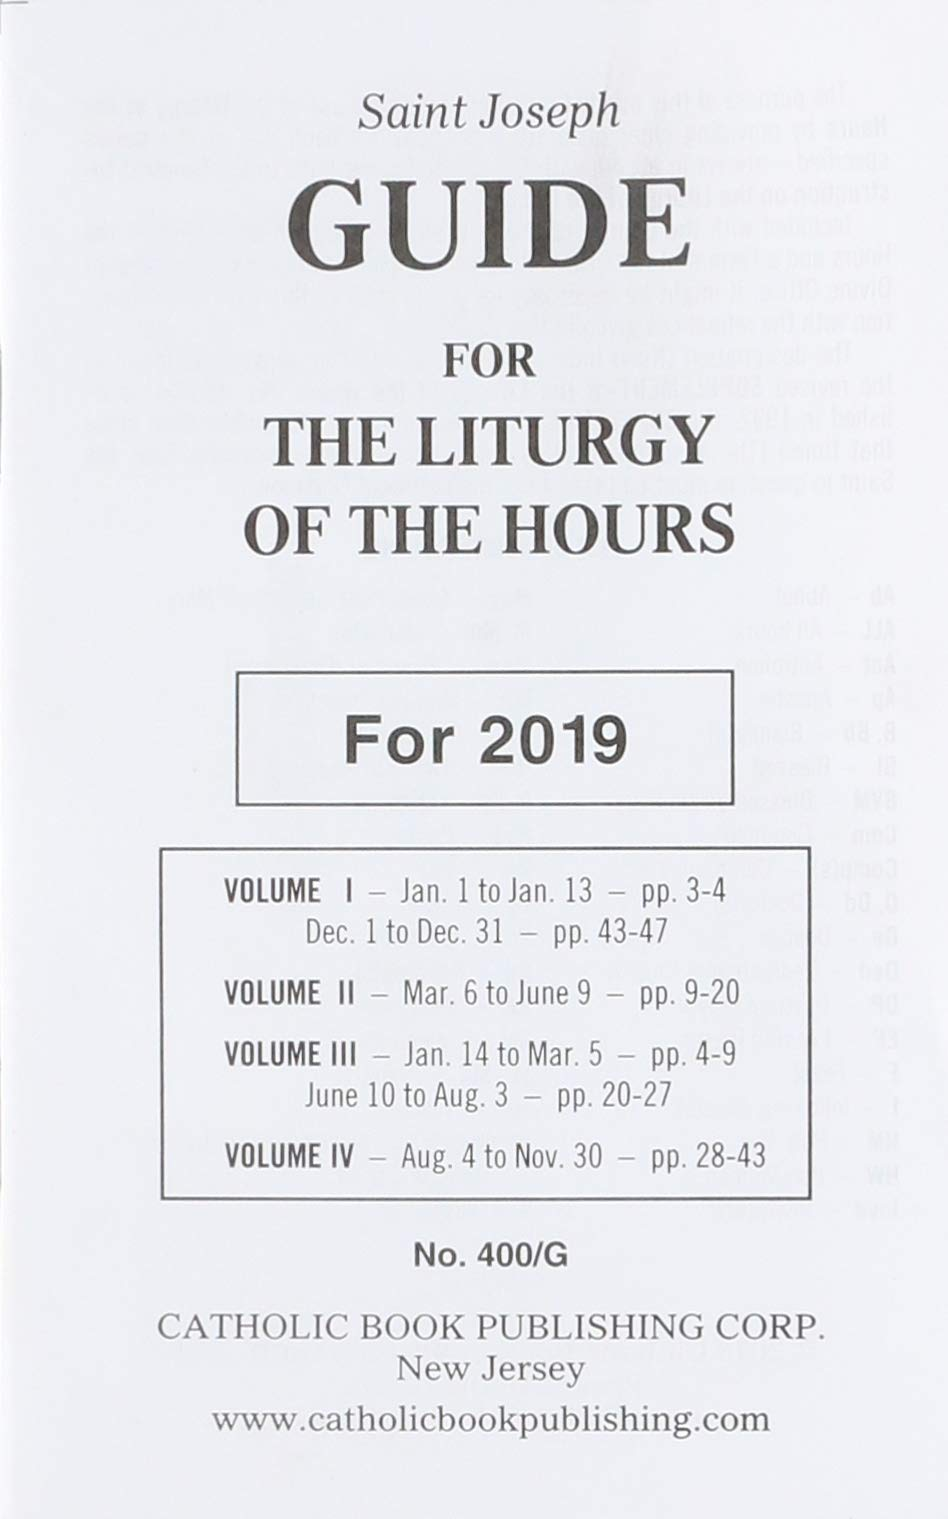 photo about Printable Liturgy of the Hours Guide referred to as Saint Joseph Expert for the Liturgy of the Hrs: For 2019